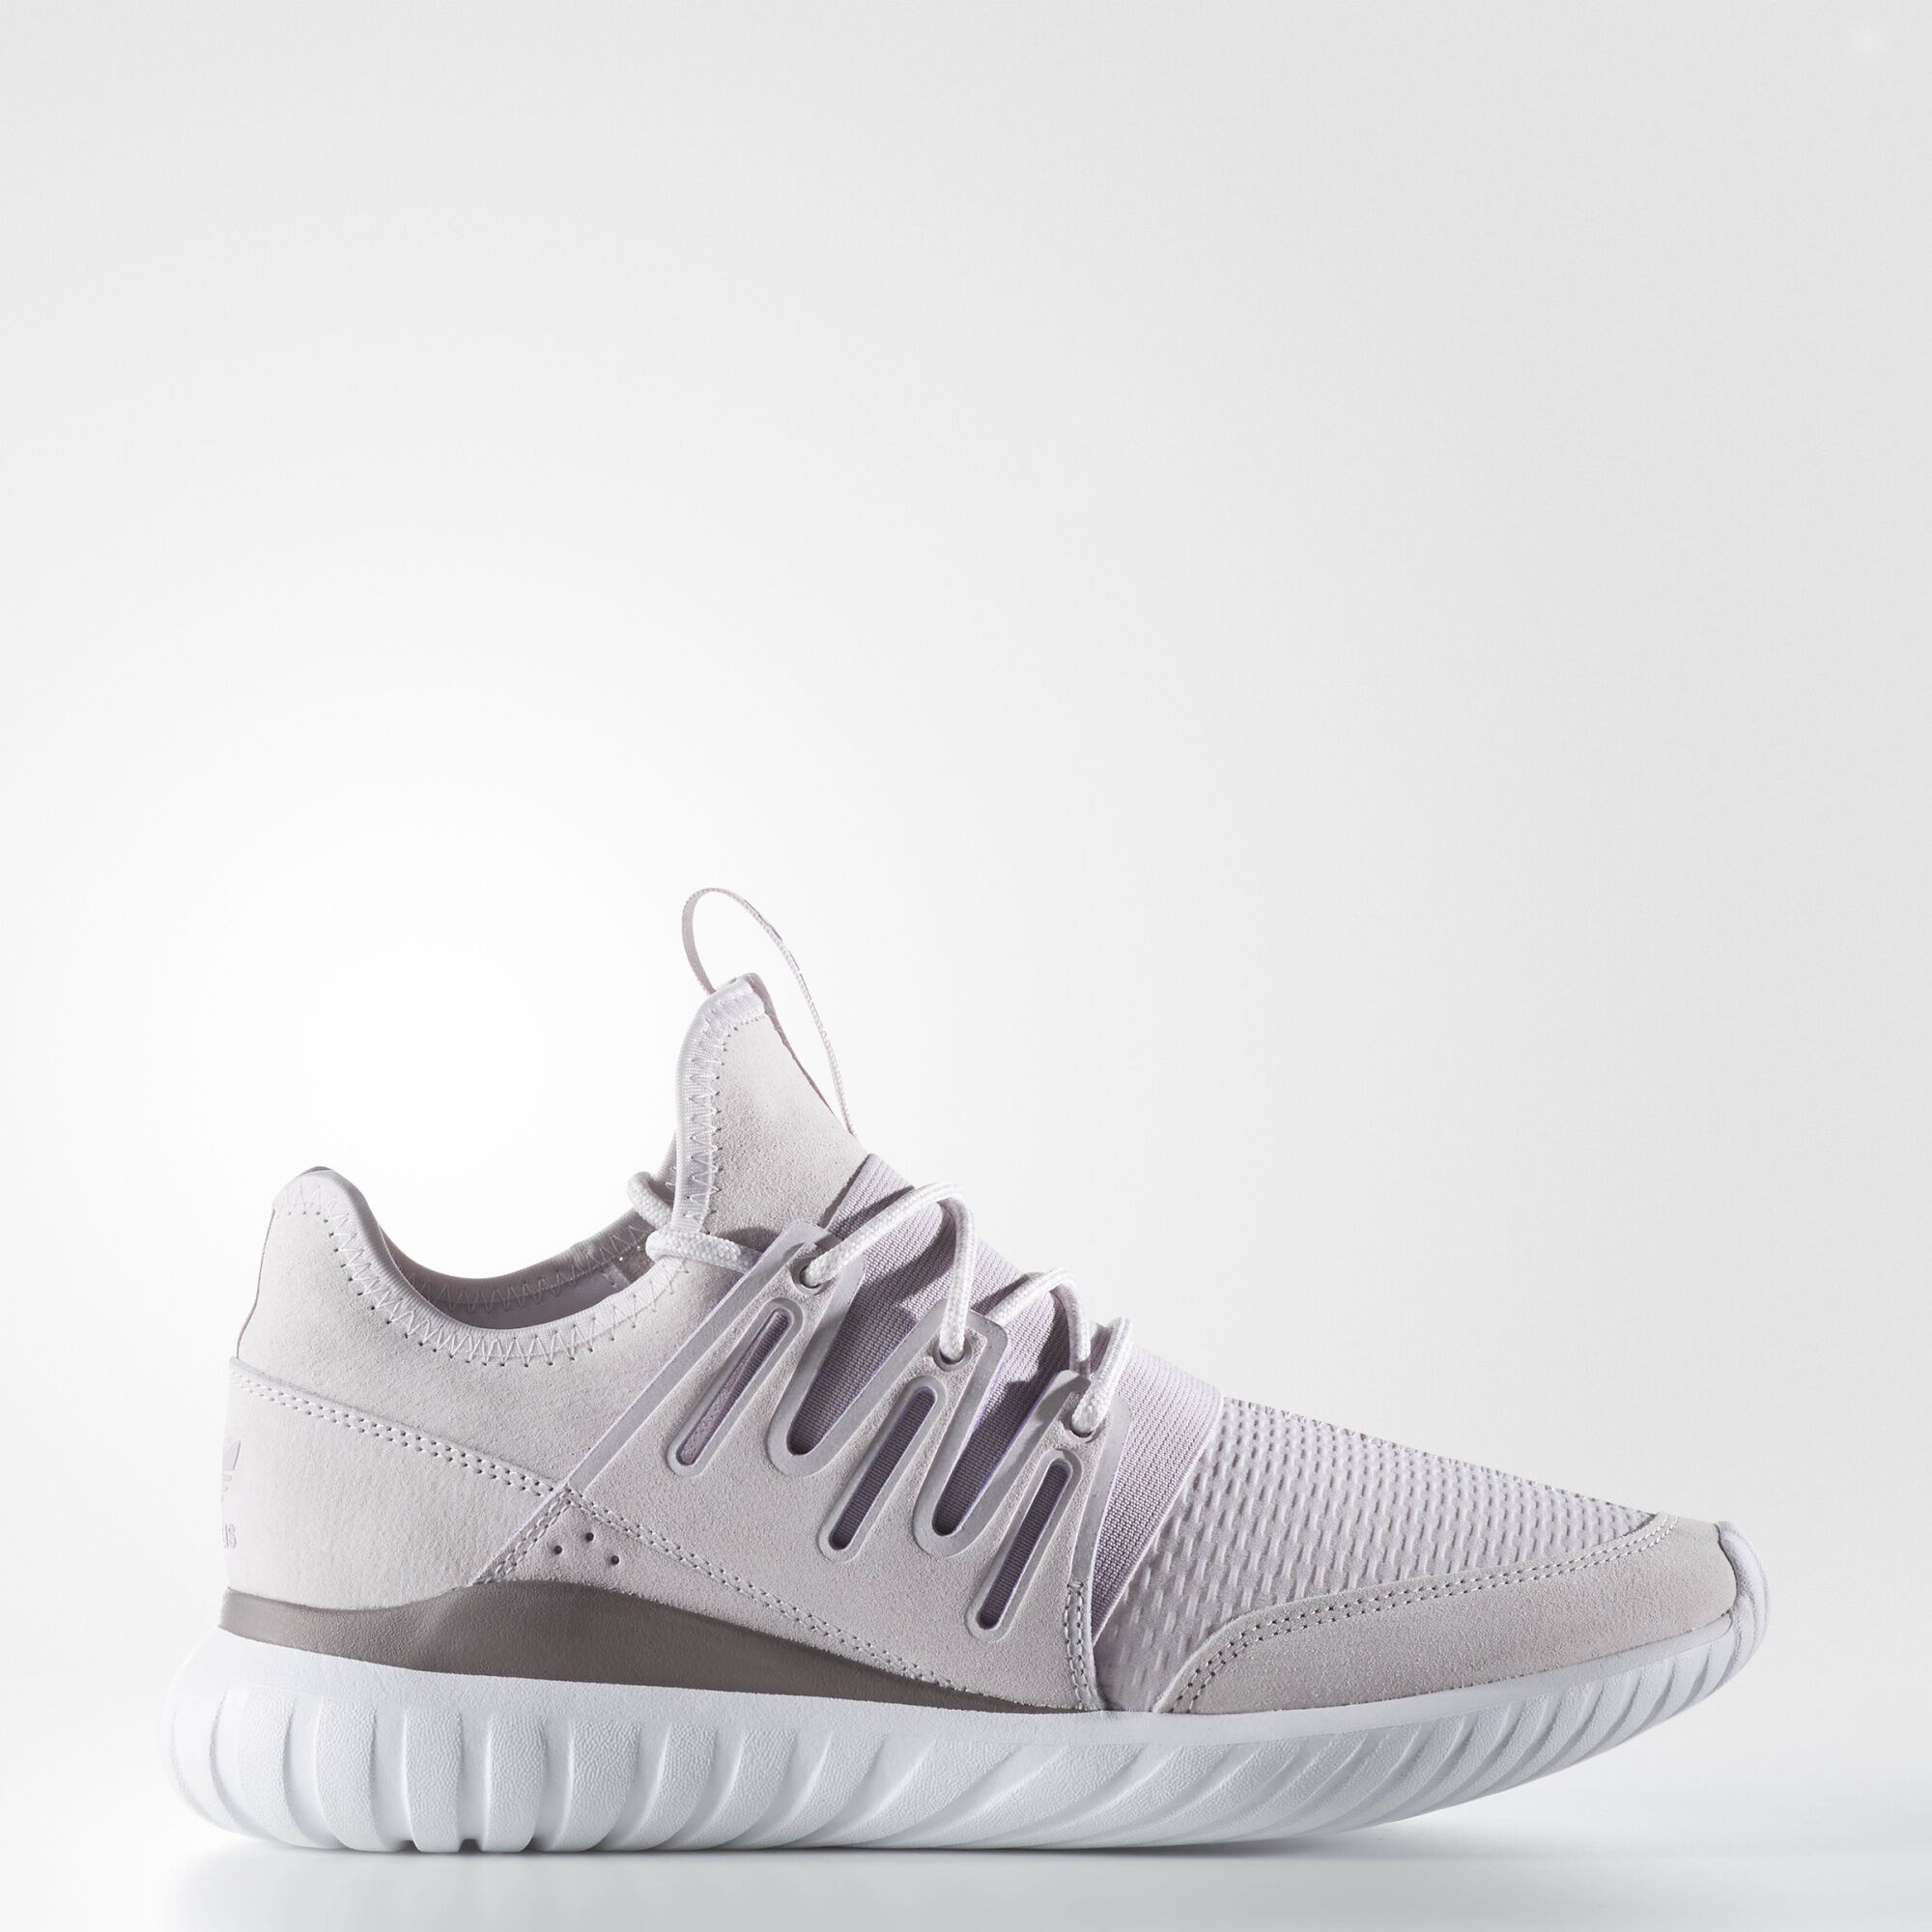 Adidas tubular primeknit wheat Men 's Shoes \\ u0026 Boots For Sale